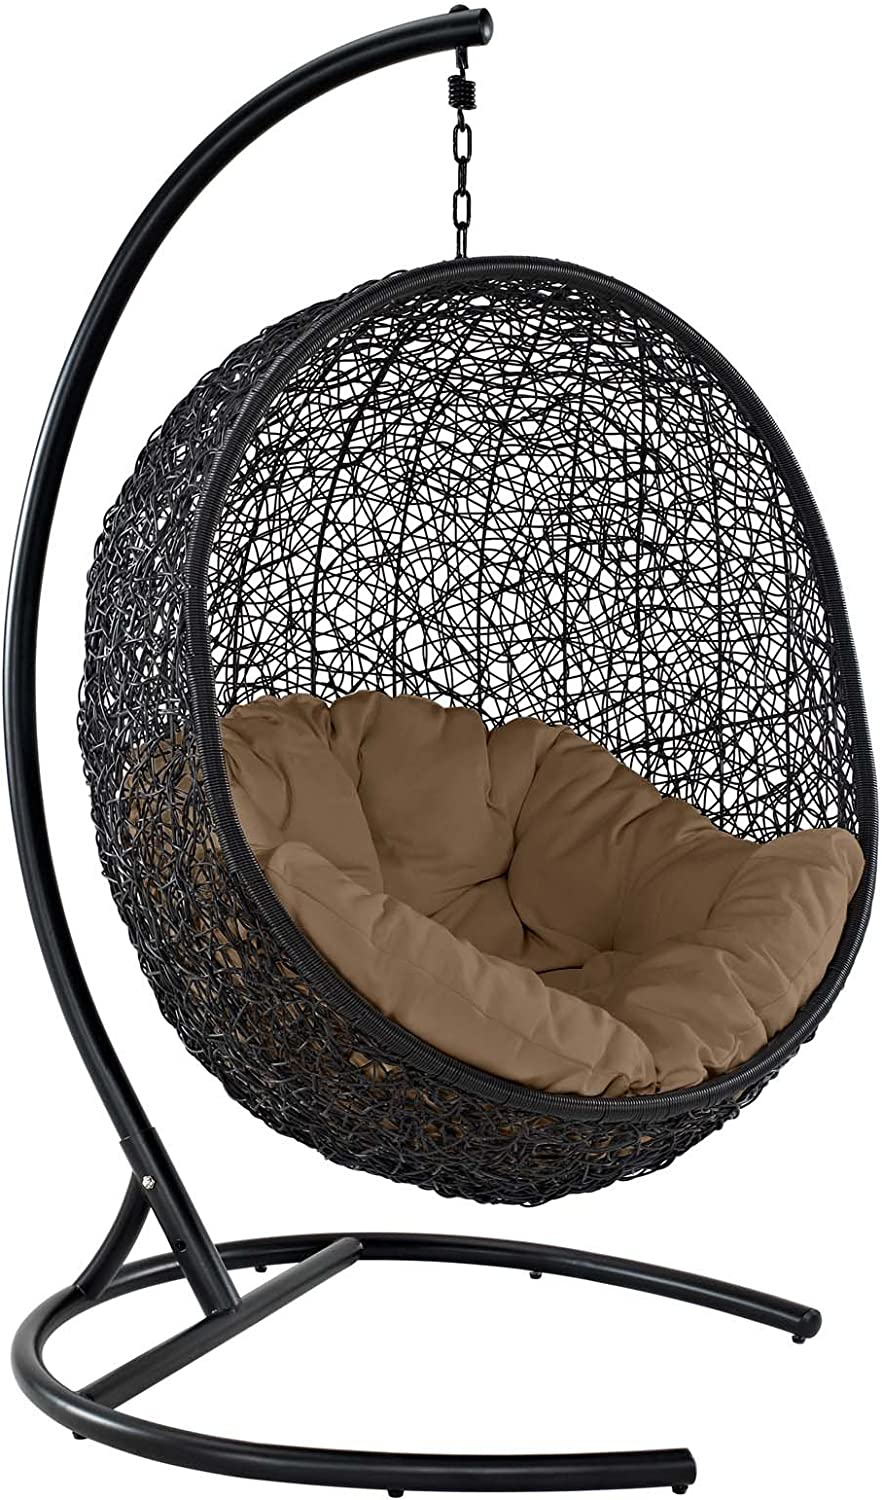 Modway EEI-739-MOC-SET Encase Wicker Rattan Outdoor Patio Porch Lounge Egg, Swing Chair with Stand, Mocha